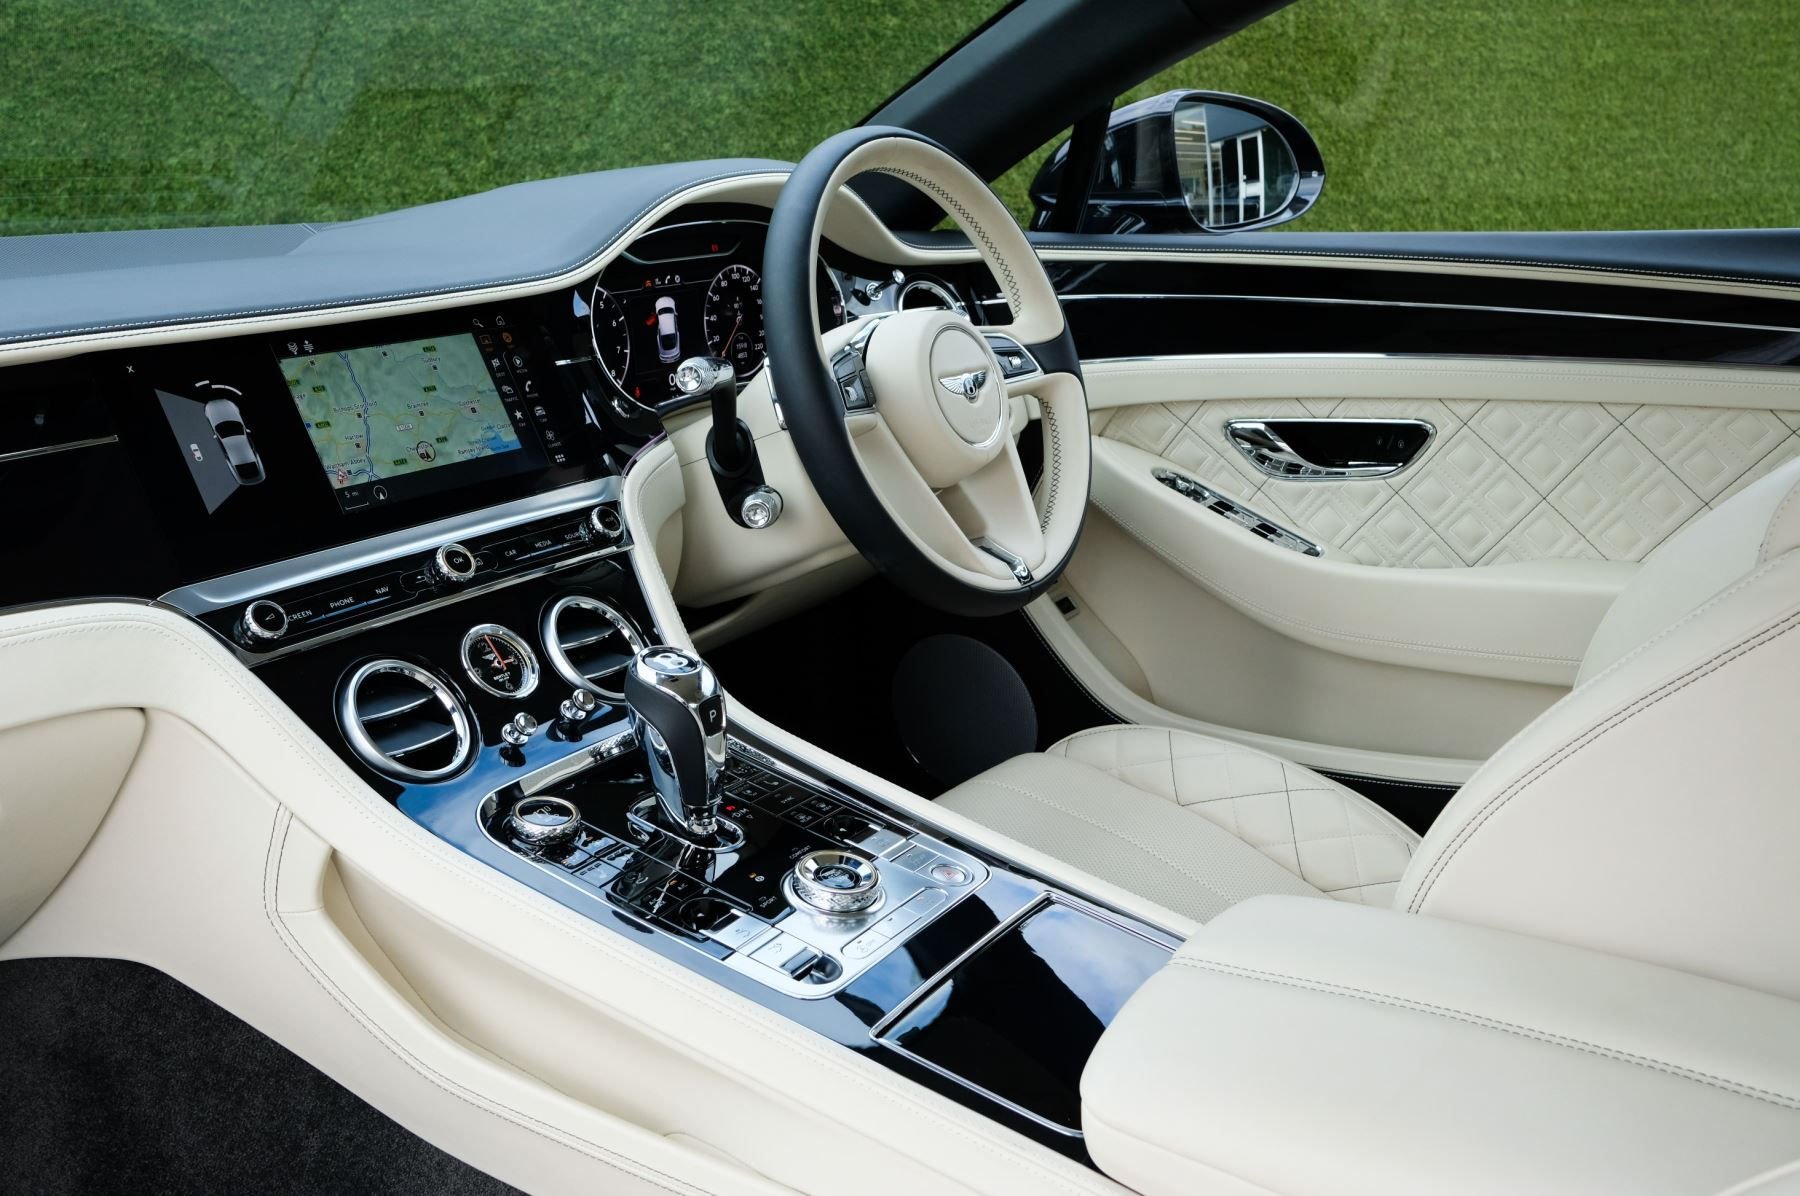 Bentley Continental GT 6.0 W12 1st Edition - Comfort Seating - Touring Specification image 12